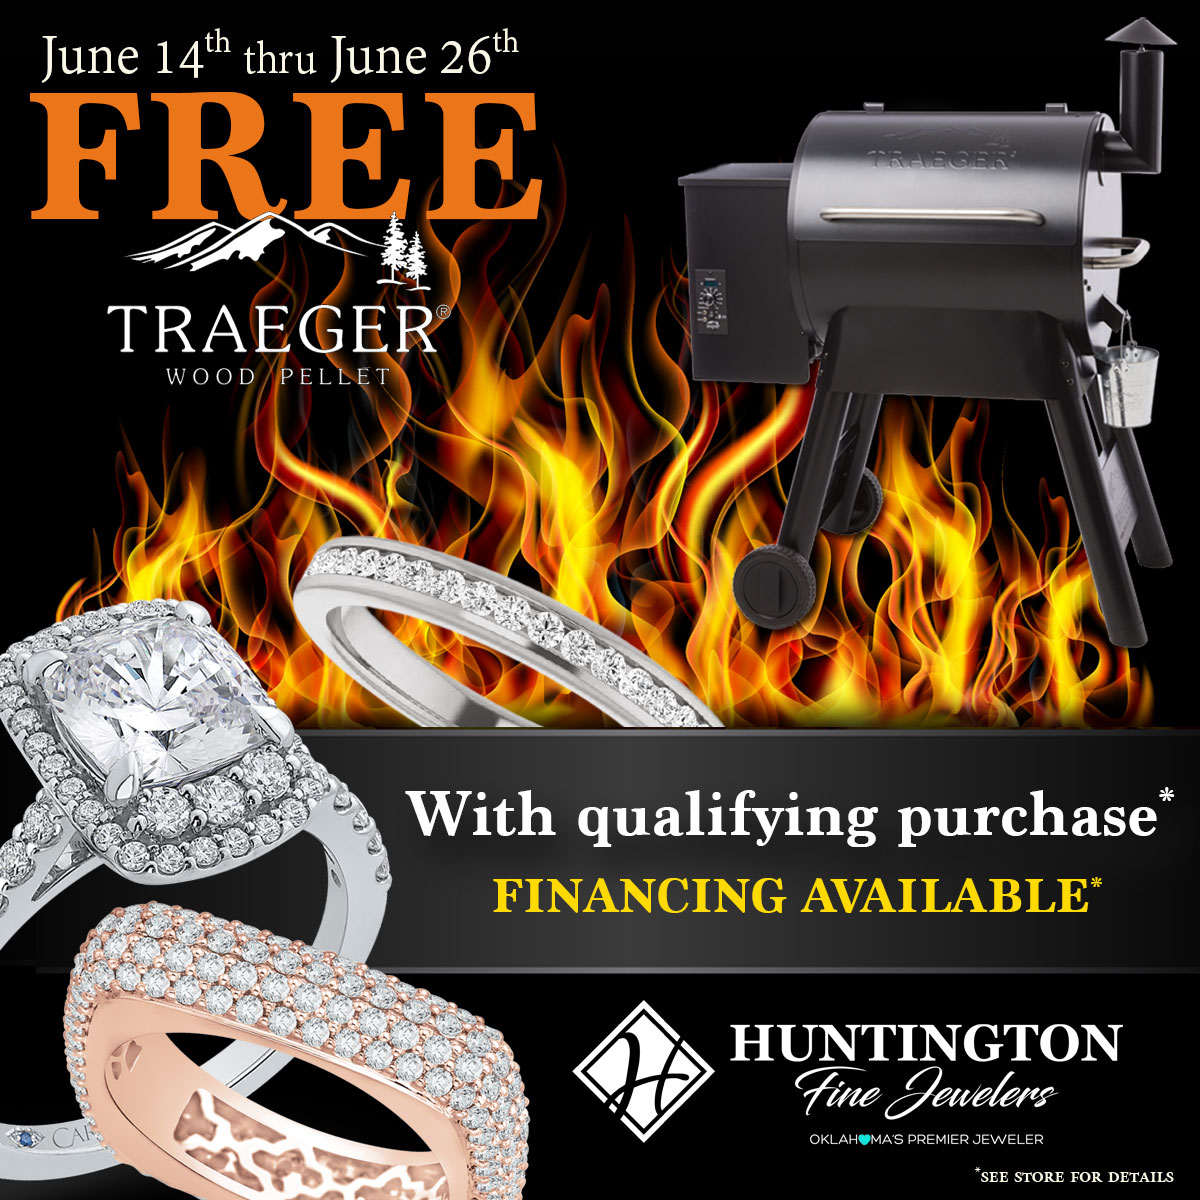 Celebrate Father's Day in Oklahoma City with An Exclusive Offer from Huntington Fine Jewelers